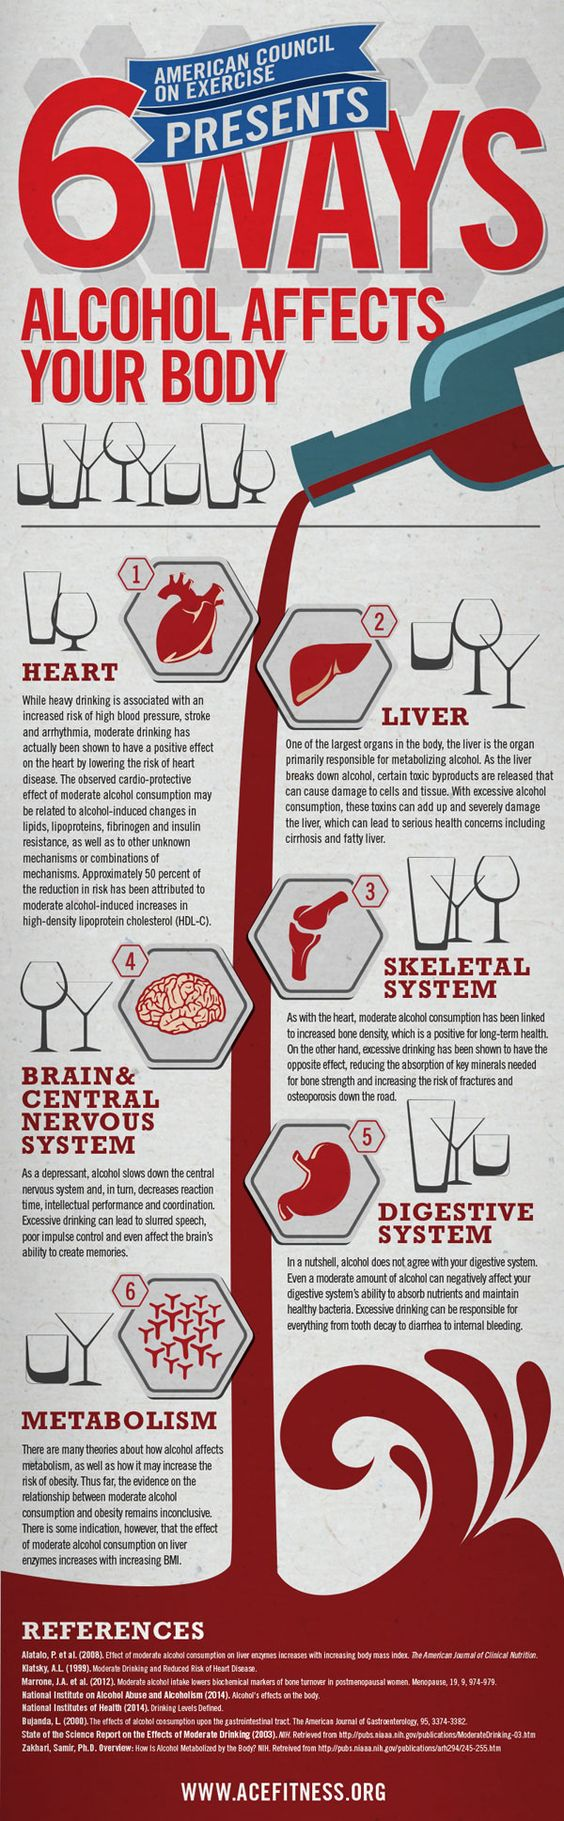 ways alcohol affects your body